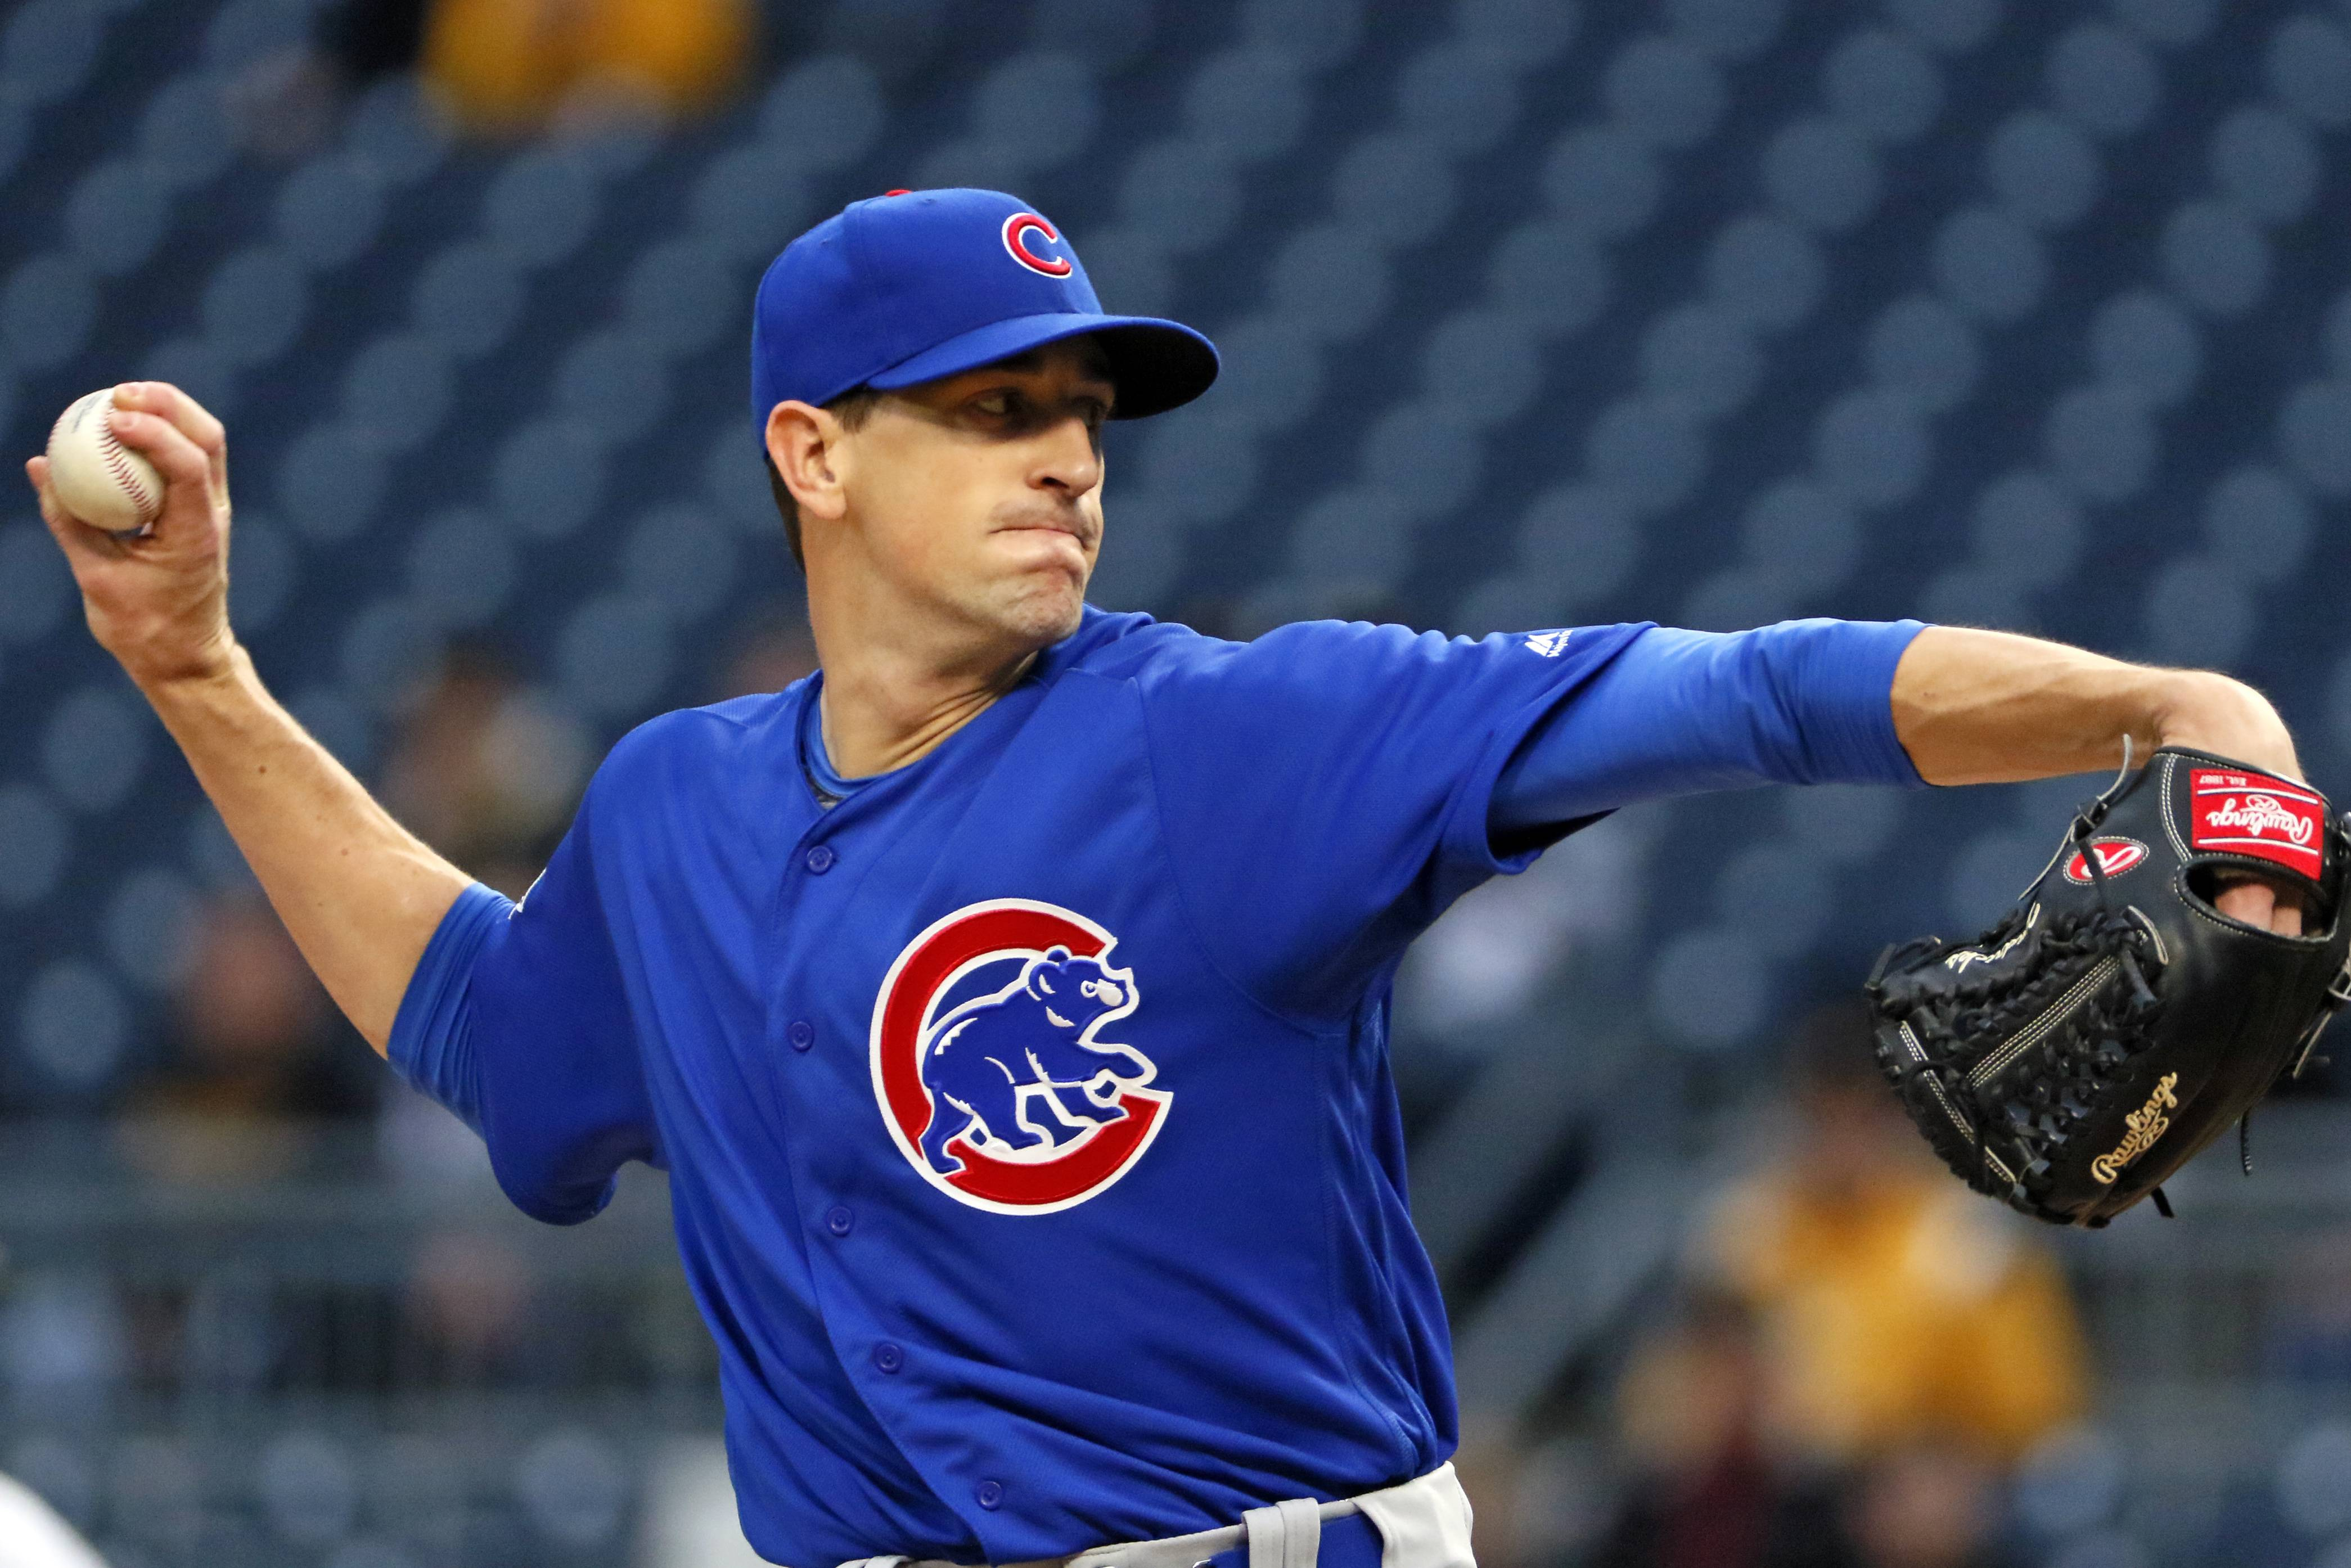 All of the pressure is on the Cubs, so having a cool hand like Kyle Hendricks on the mound is ideal as he starts against Los Angeles in Game 3 of the NLCS Tuesday night at Wrigley Field.